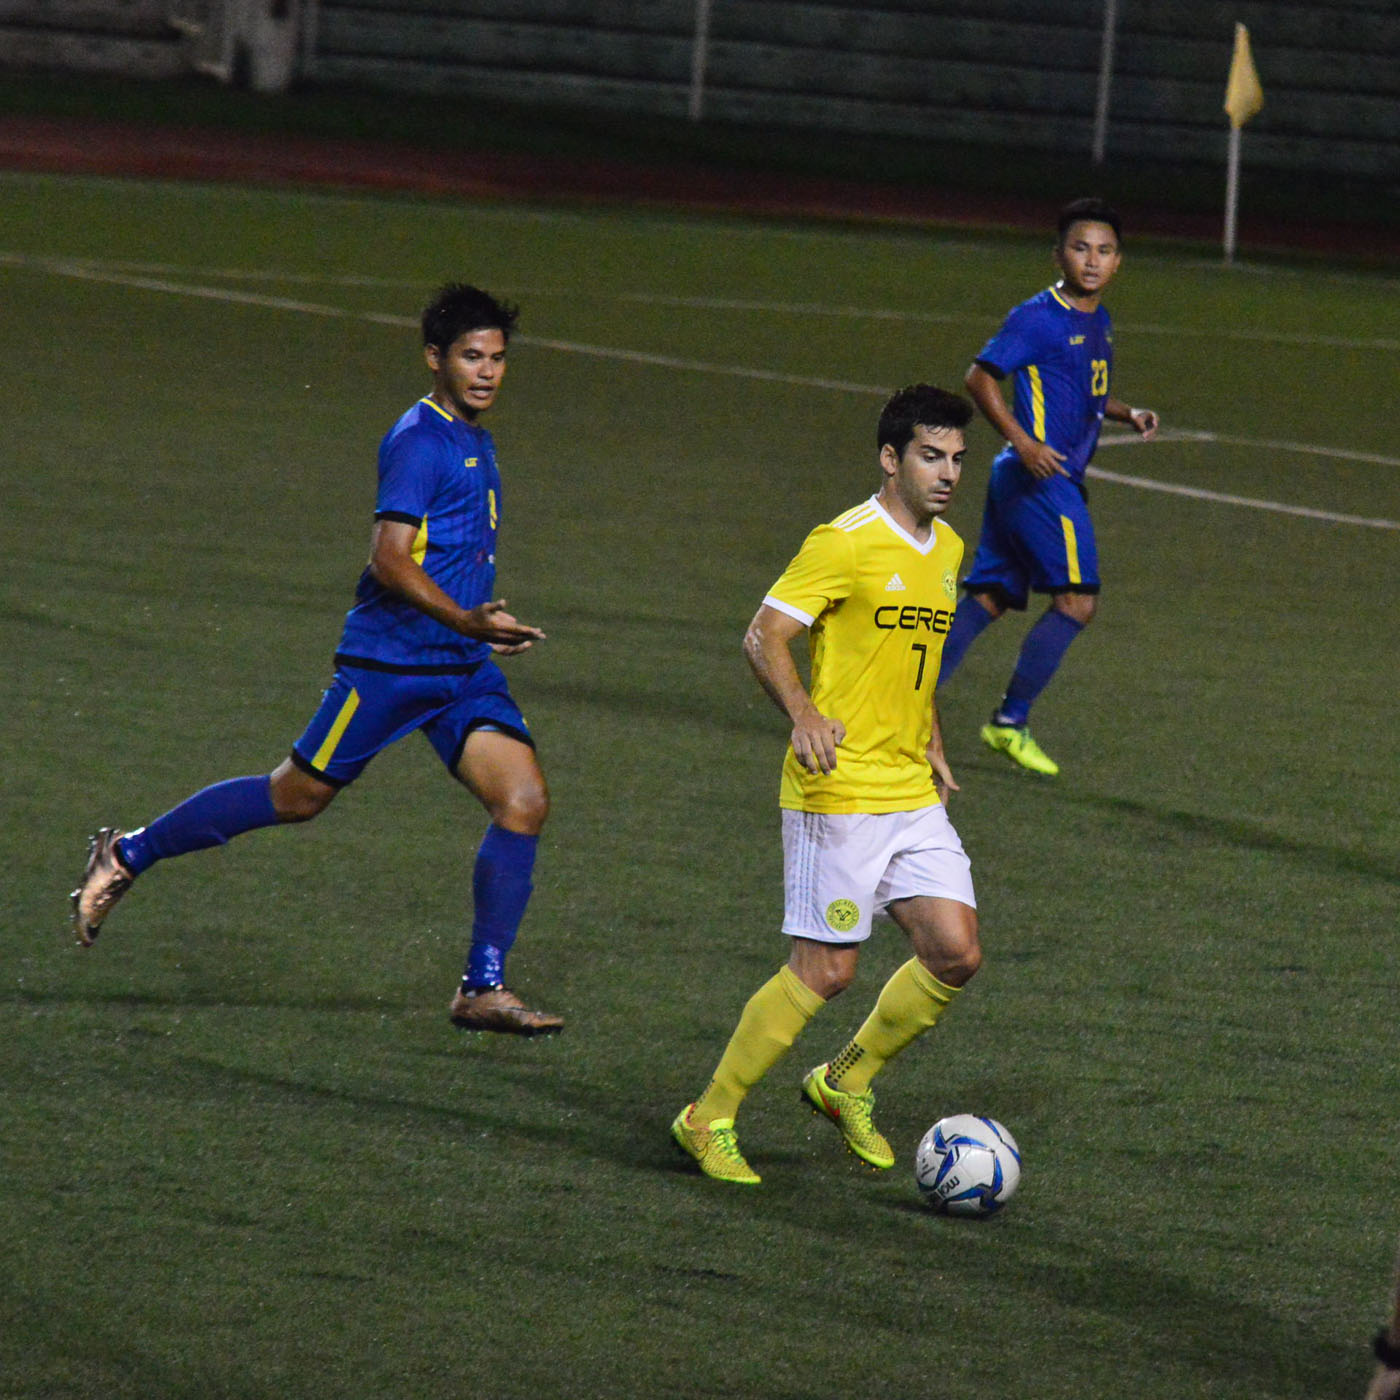 SUSPENDED. Ceres forward Bienve Marau00f1on will not play against Home United due to a two-match ban. Photo by Bob Guerrero/Rappler